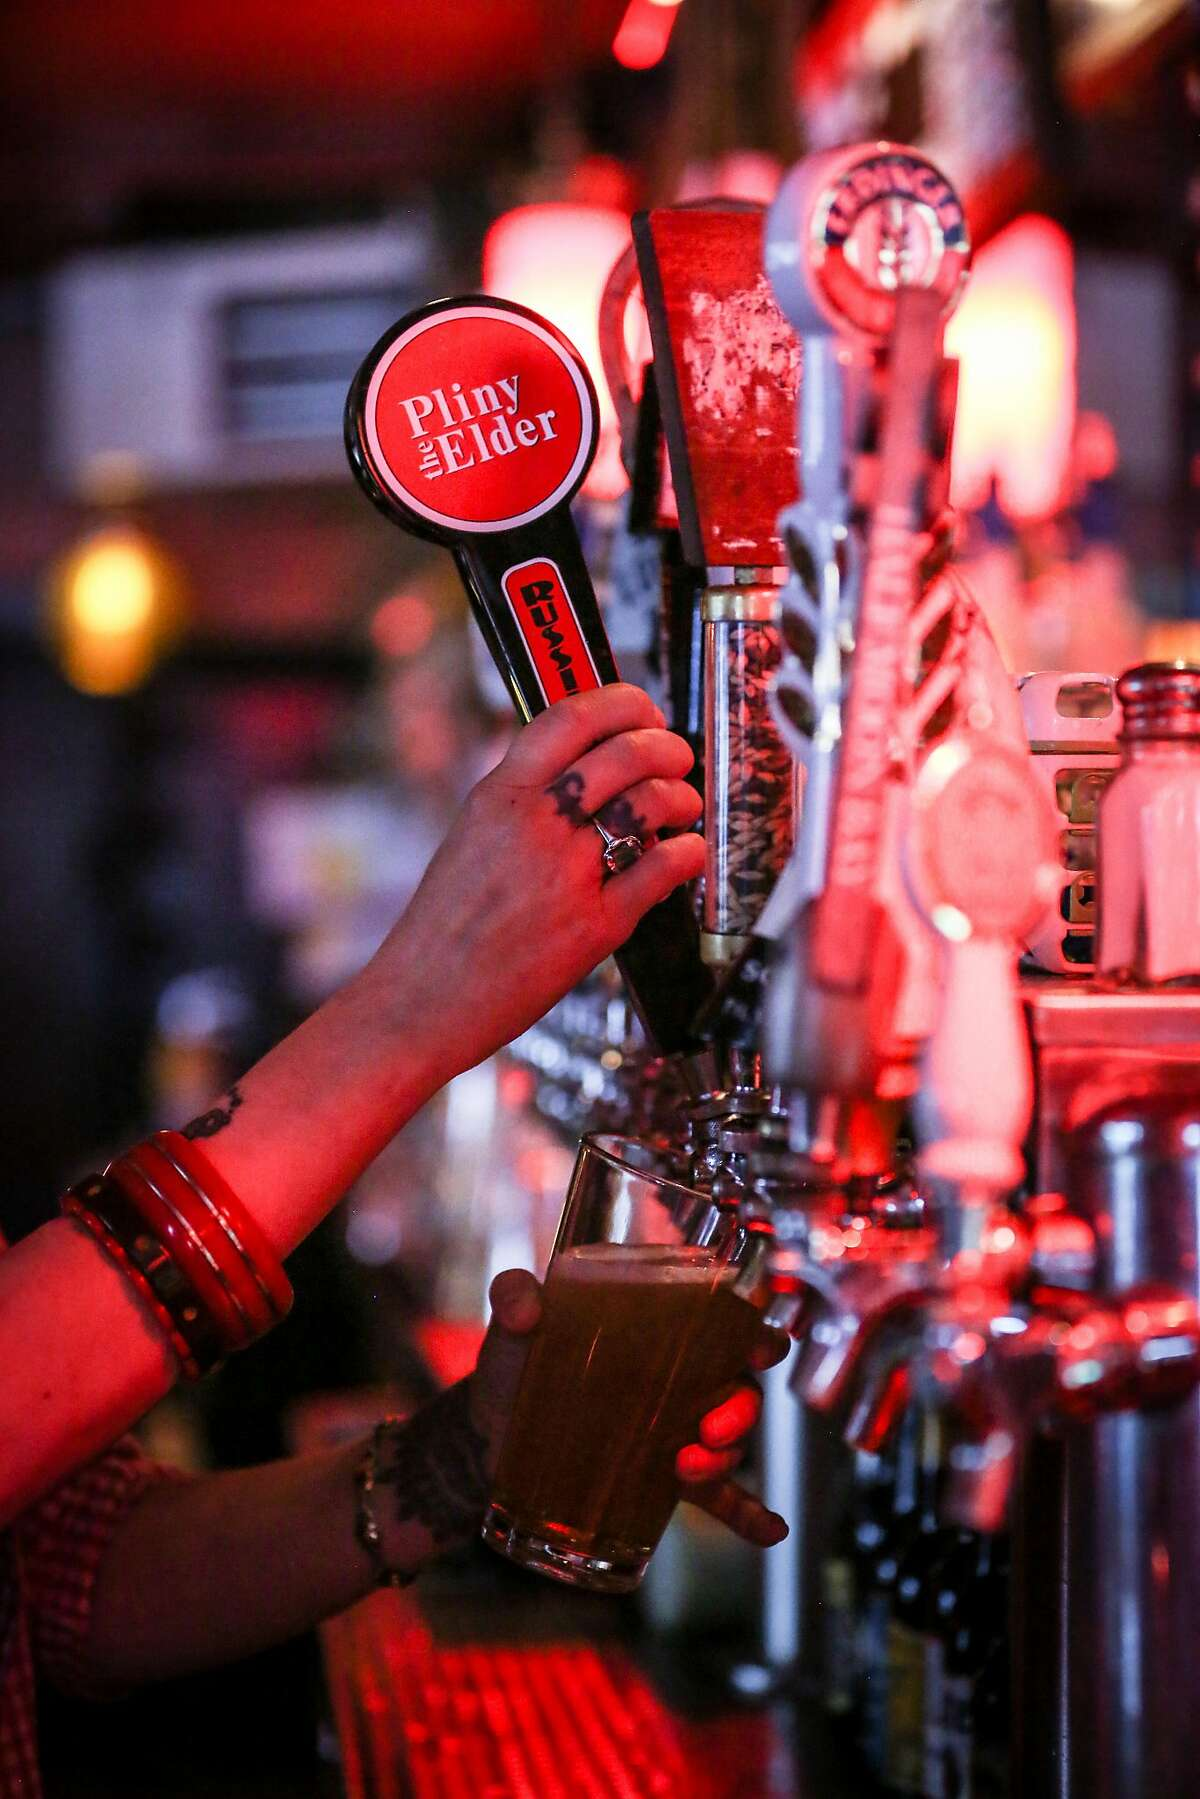 Bartender Christina Lingys pours a pint of the highly sought after Pliny the Elder by Russian River Brewing Co at The Page in San Francisco on Thursday, Aug. 18th.